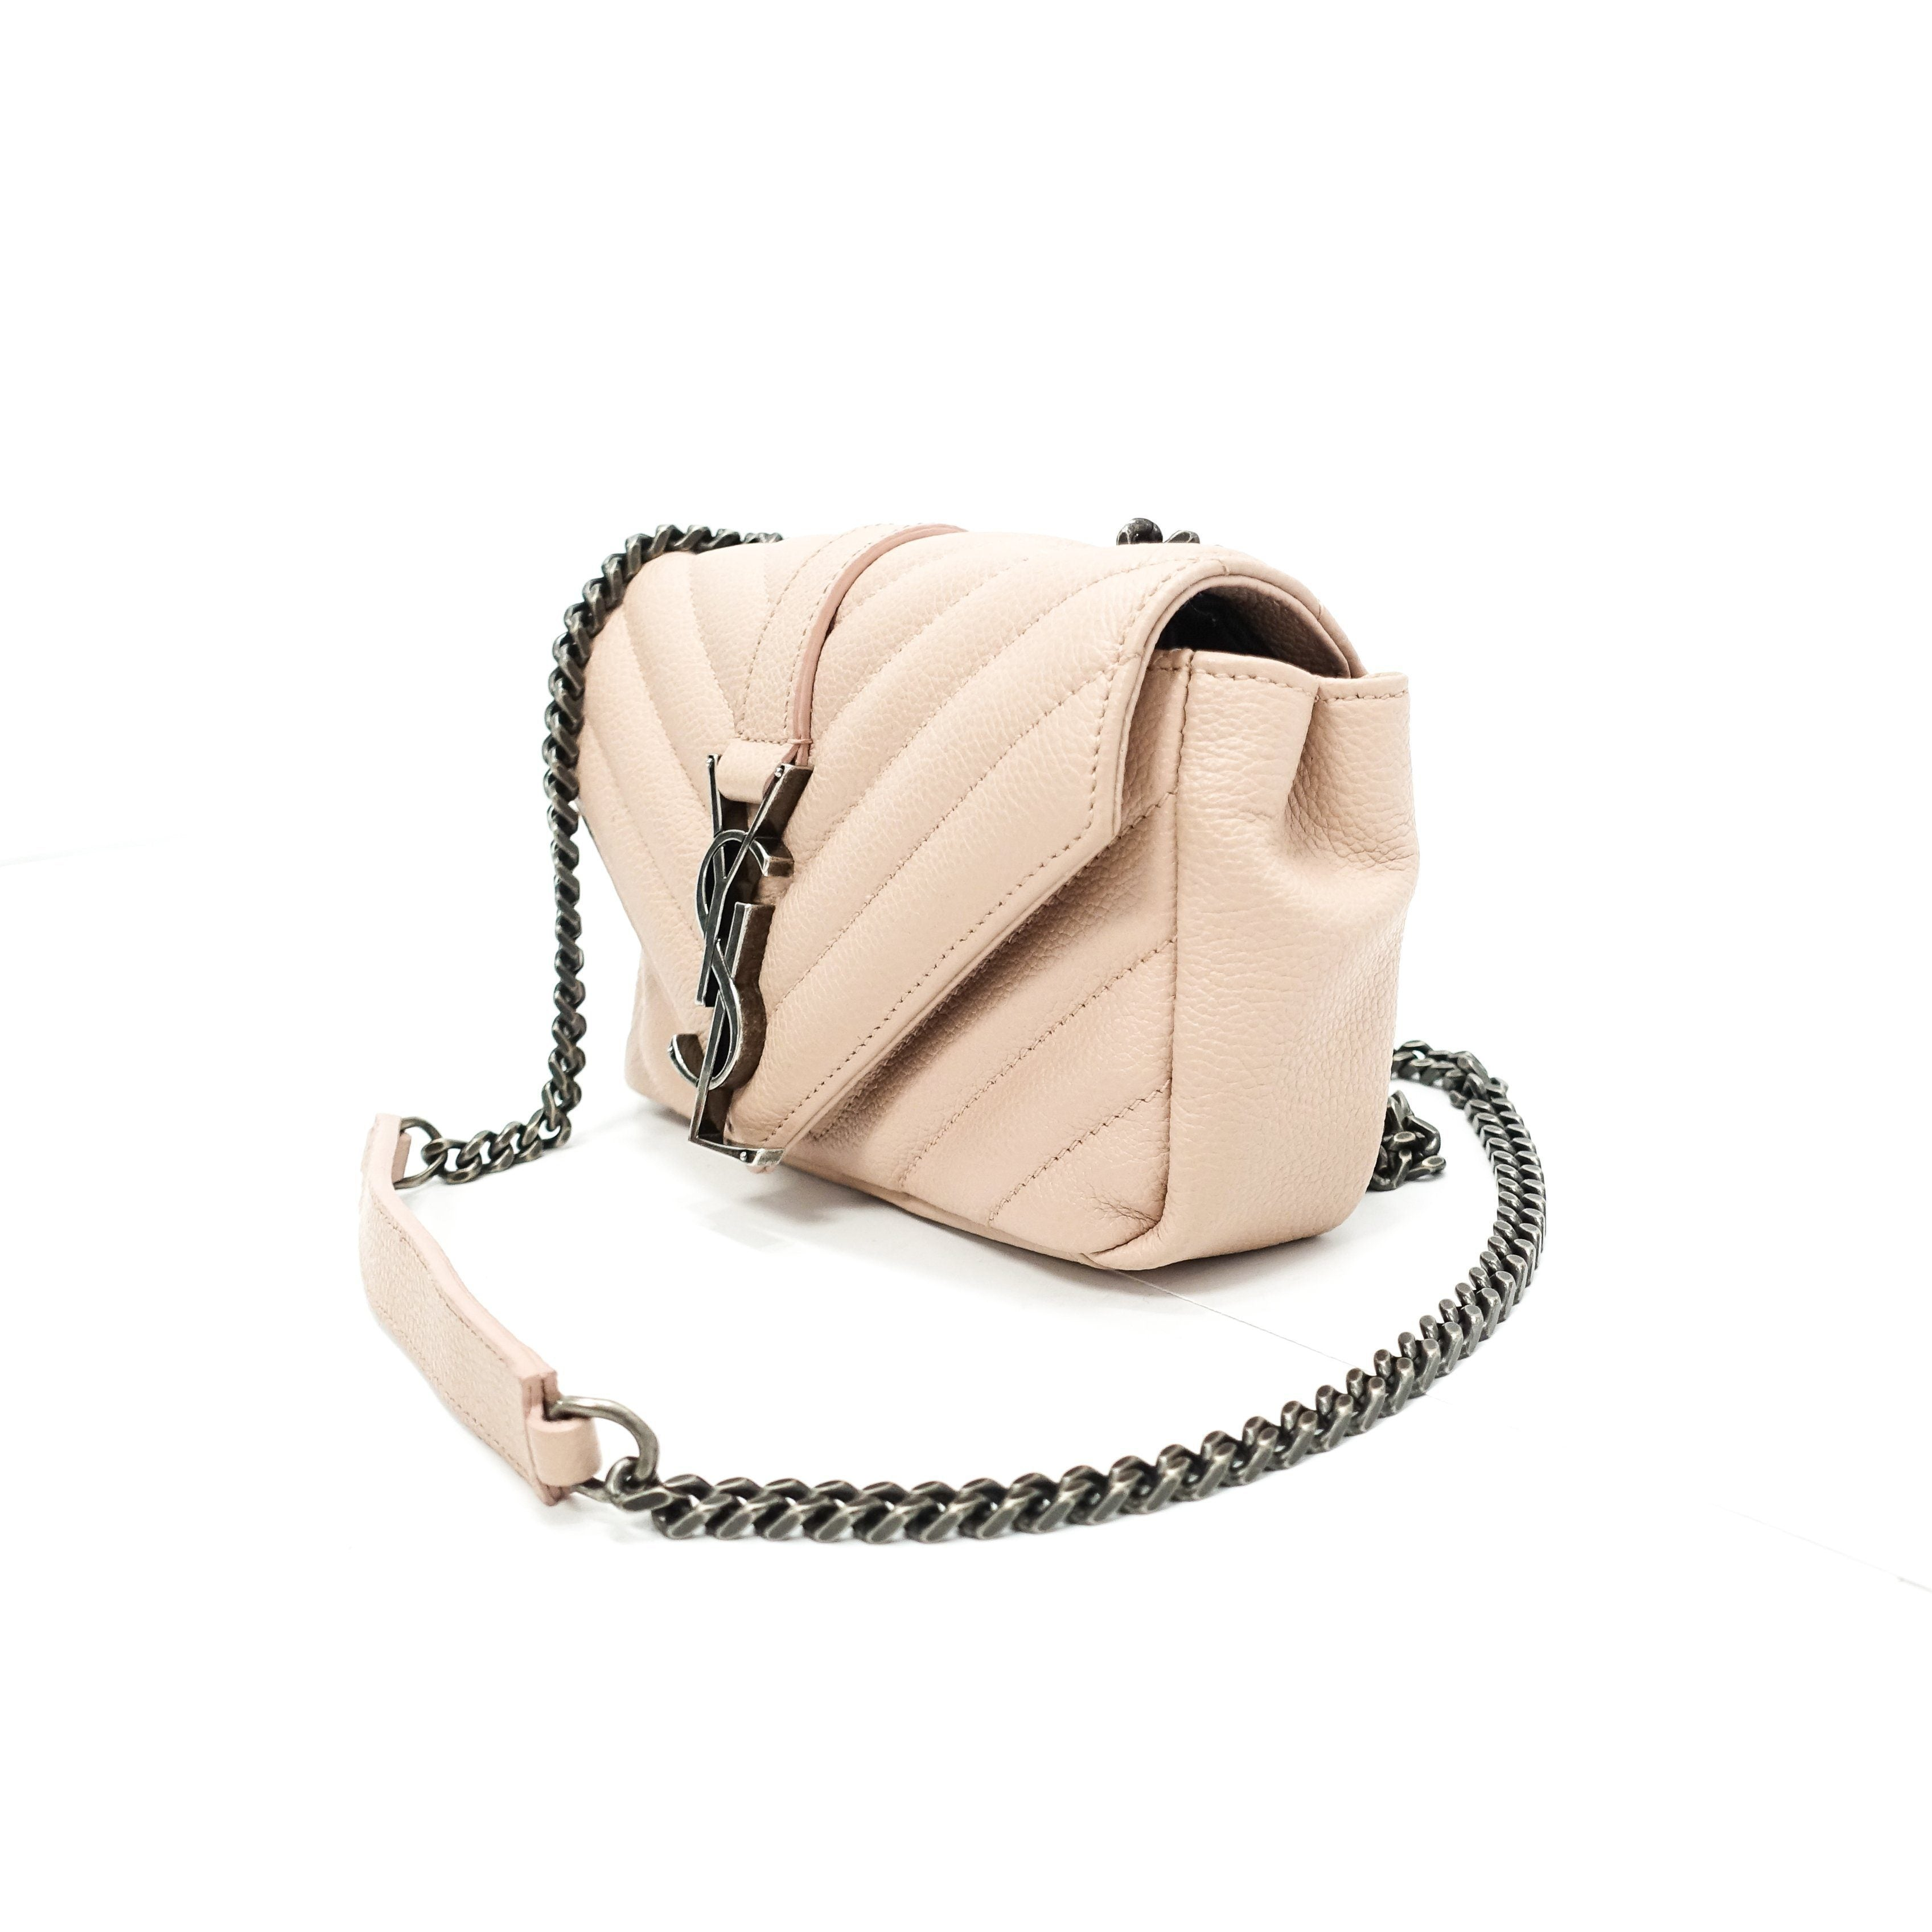 offer discounts durable in use genuine YSL Pink Wallet Baby Chain Matelasse Chevron Monogram ...